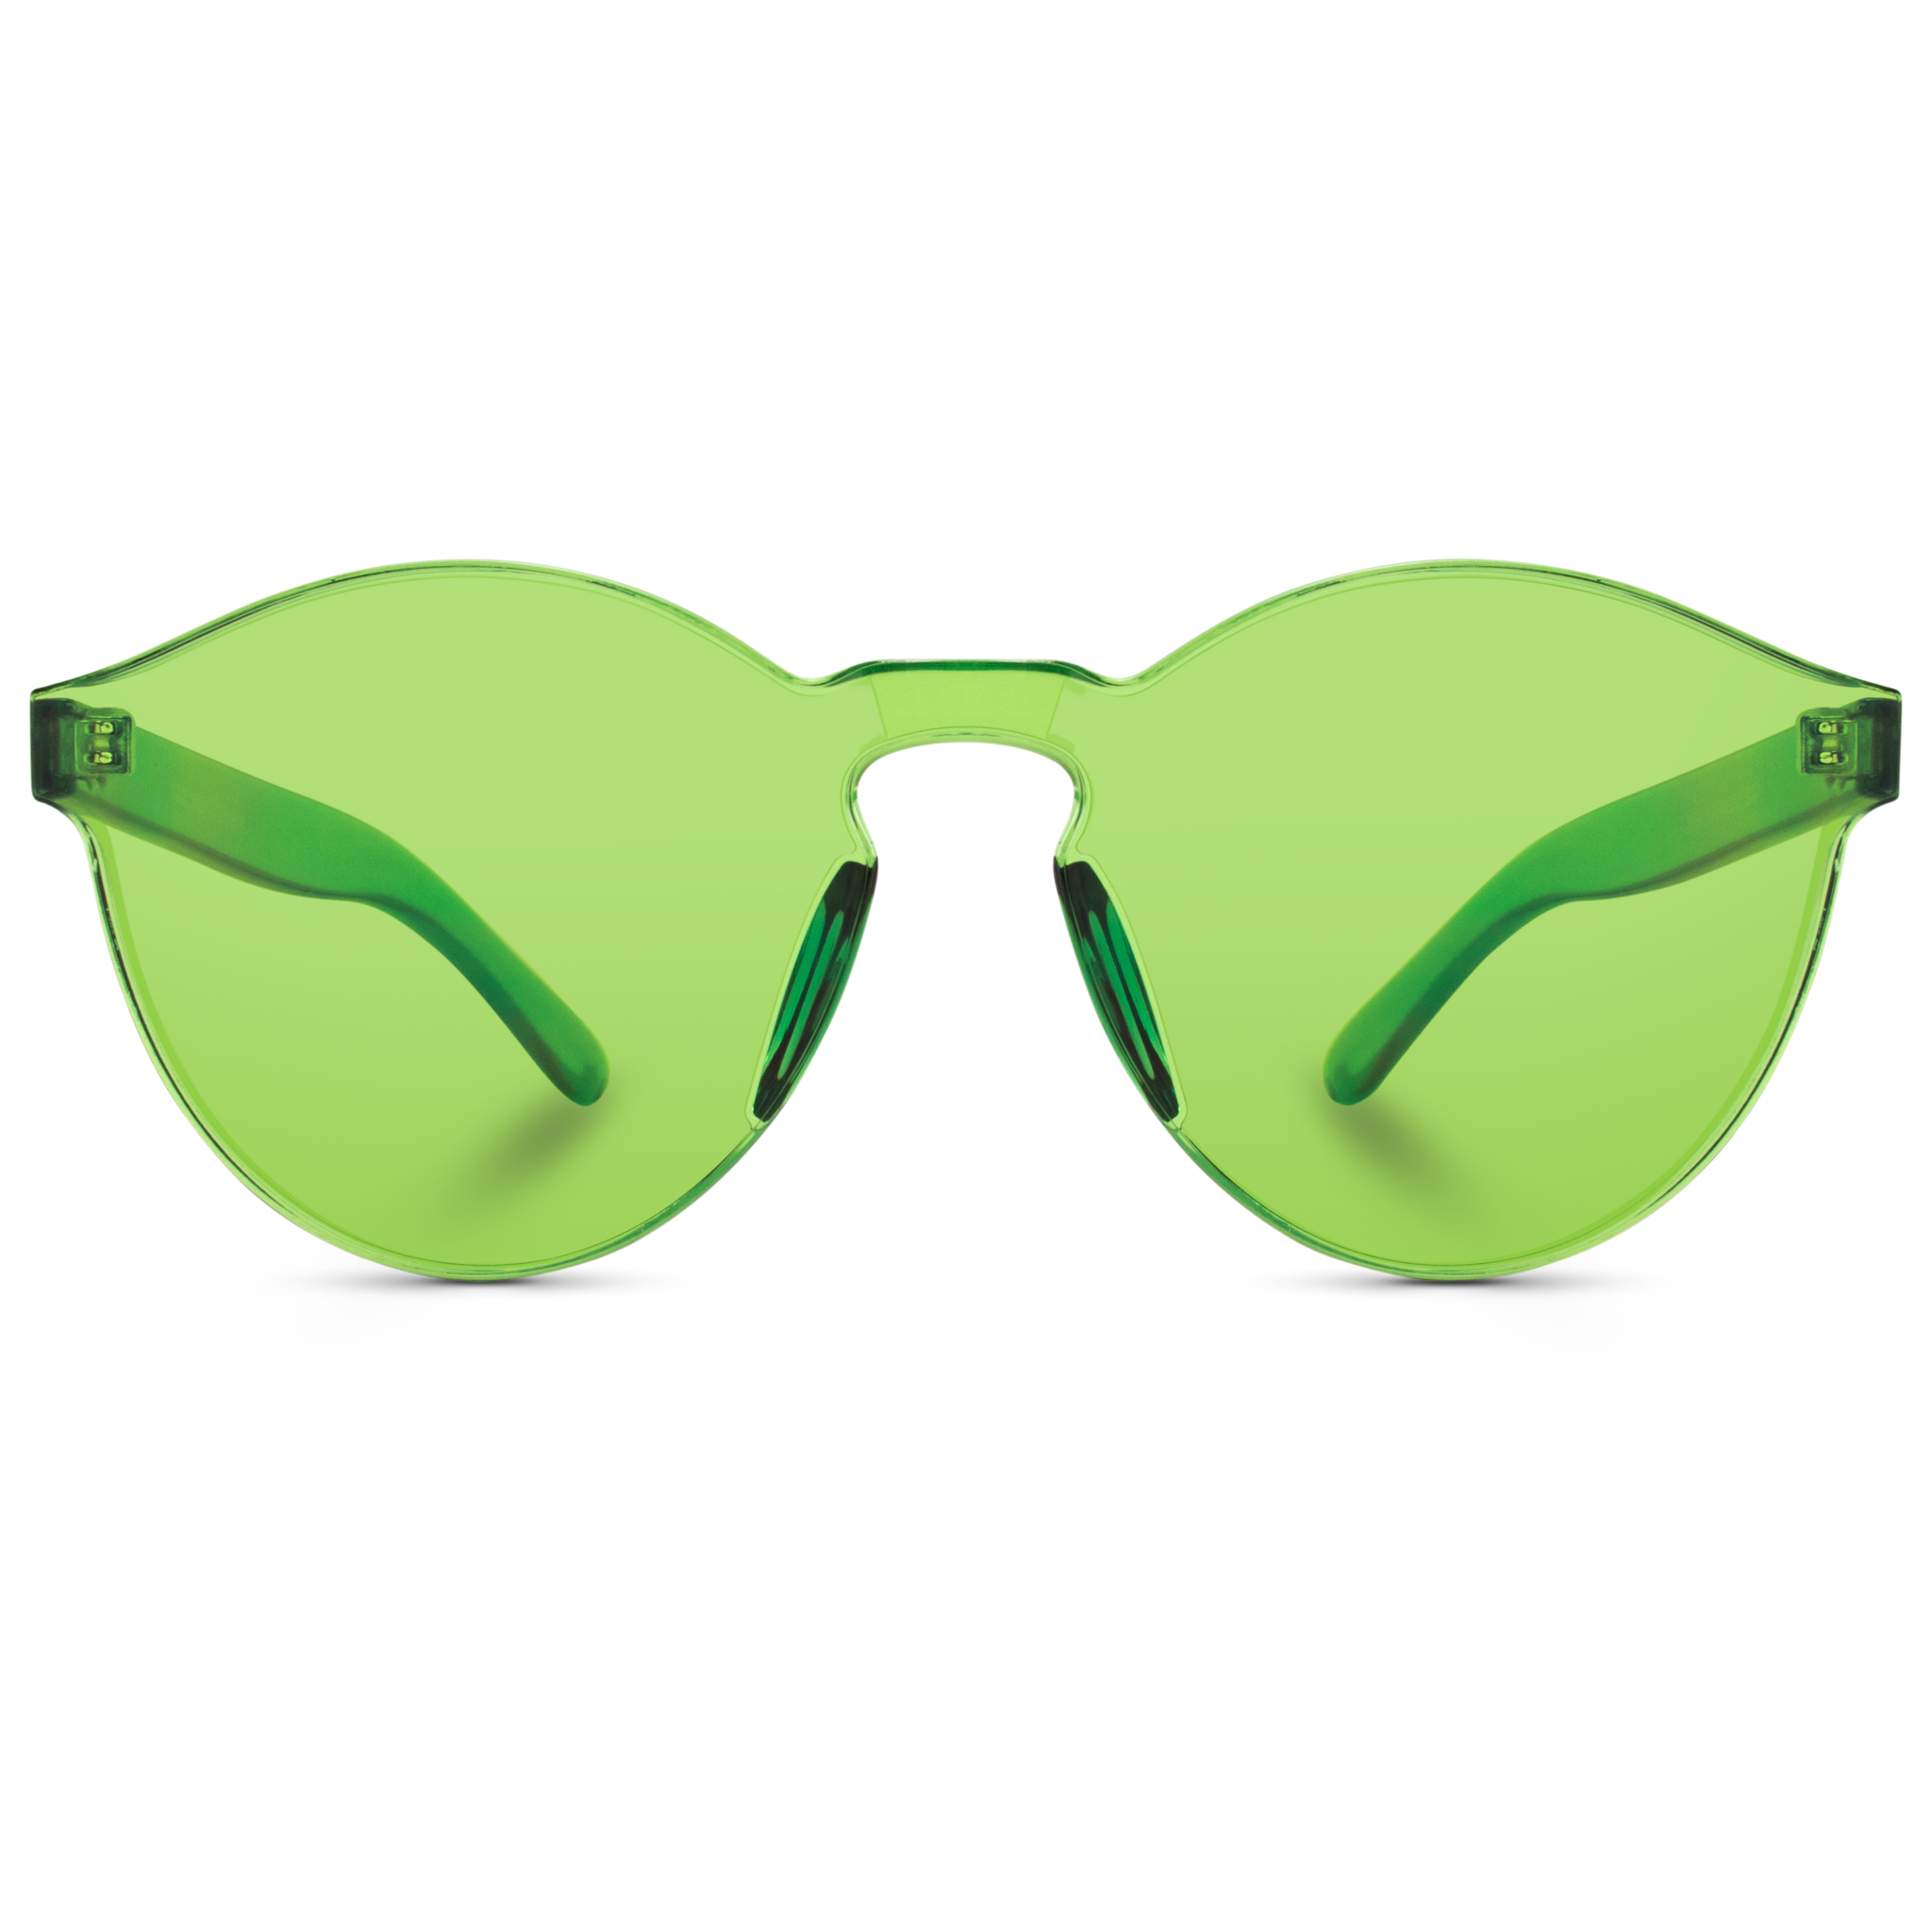 tinted green round sunglasses, mono block round tinted sunglasses